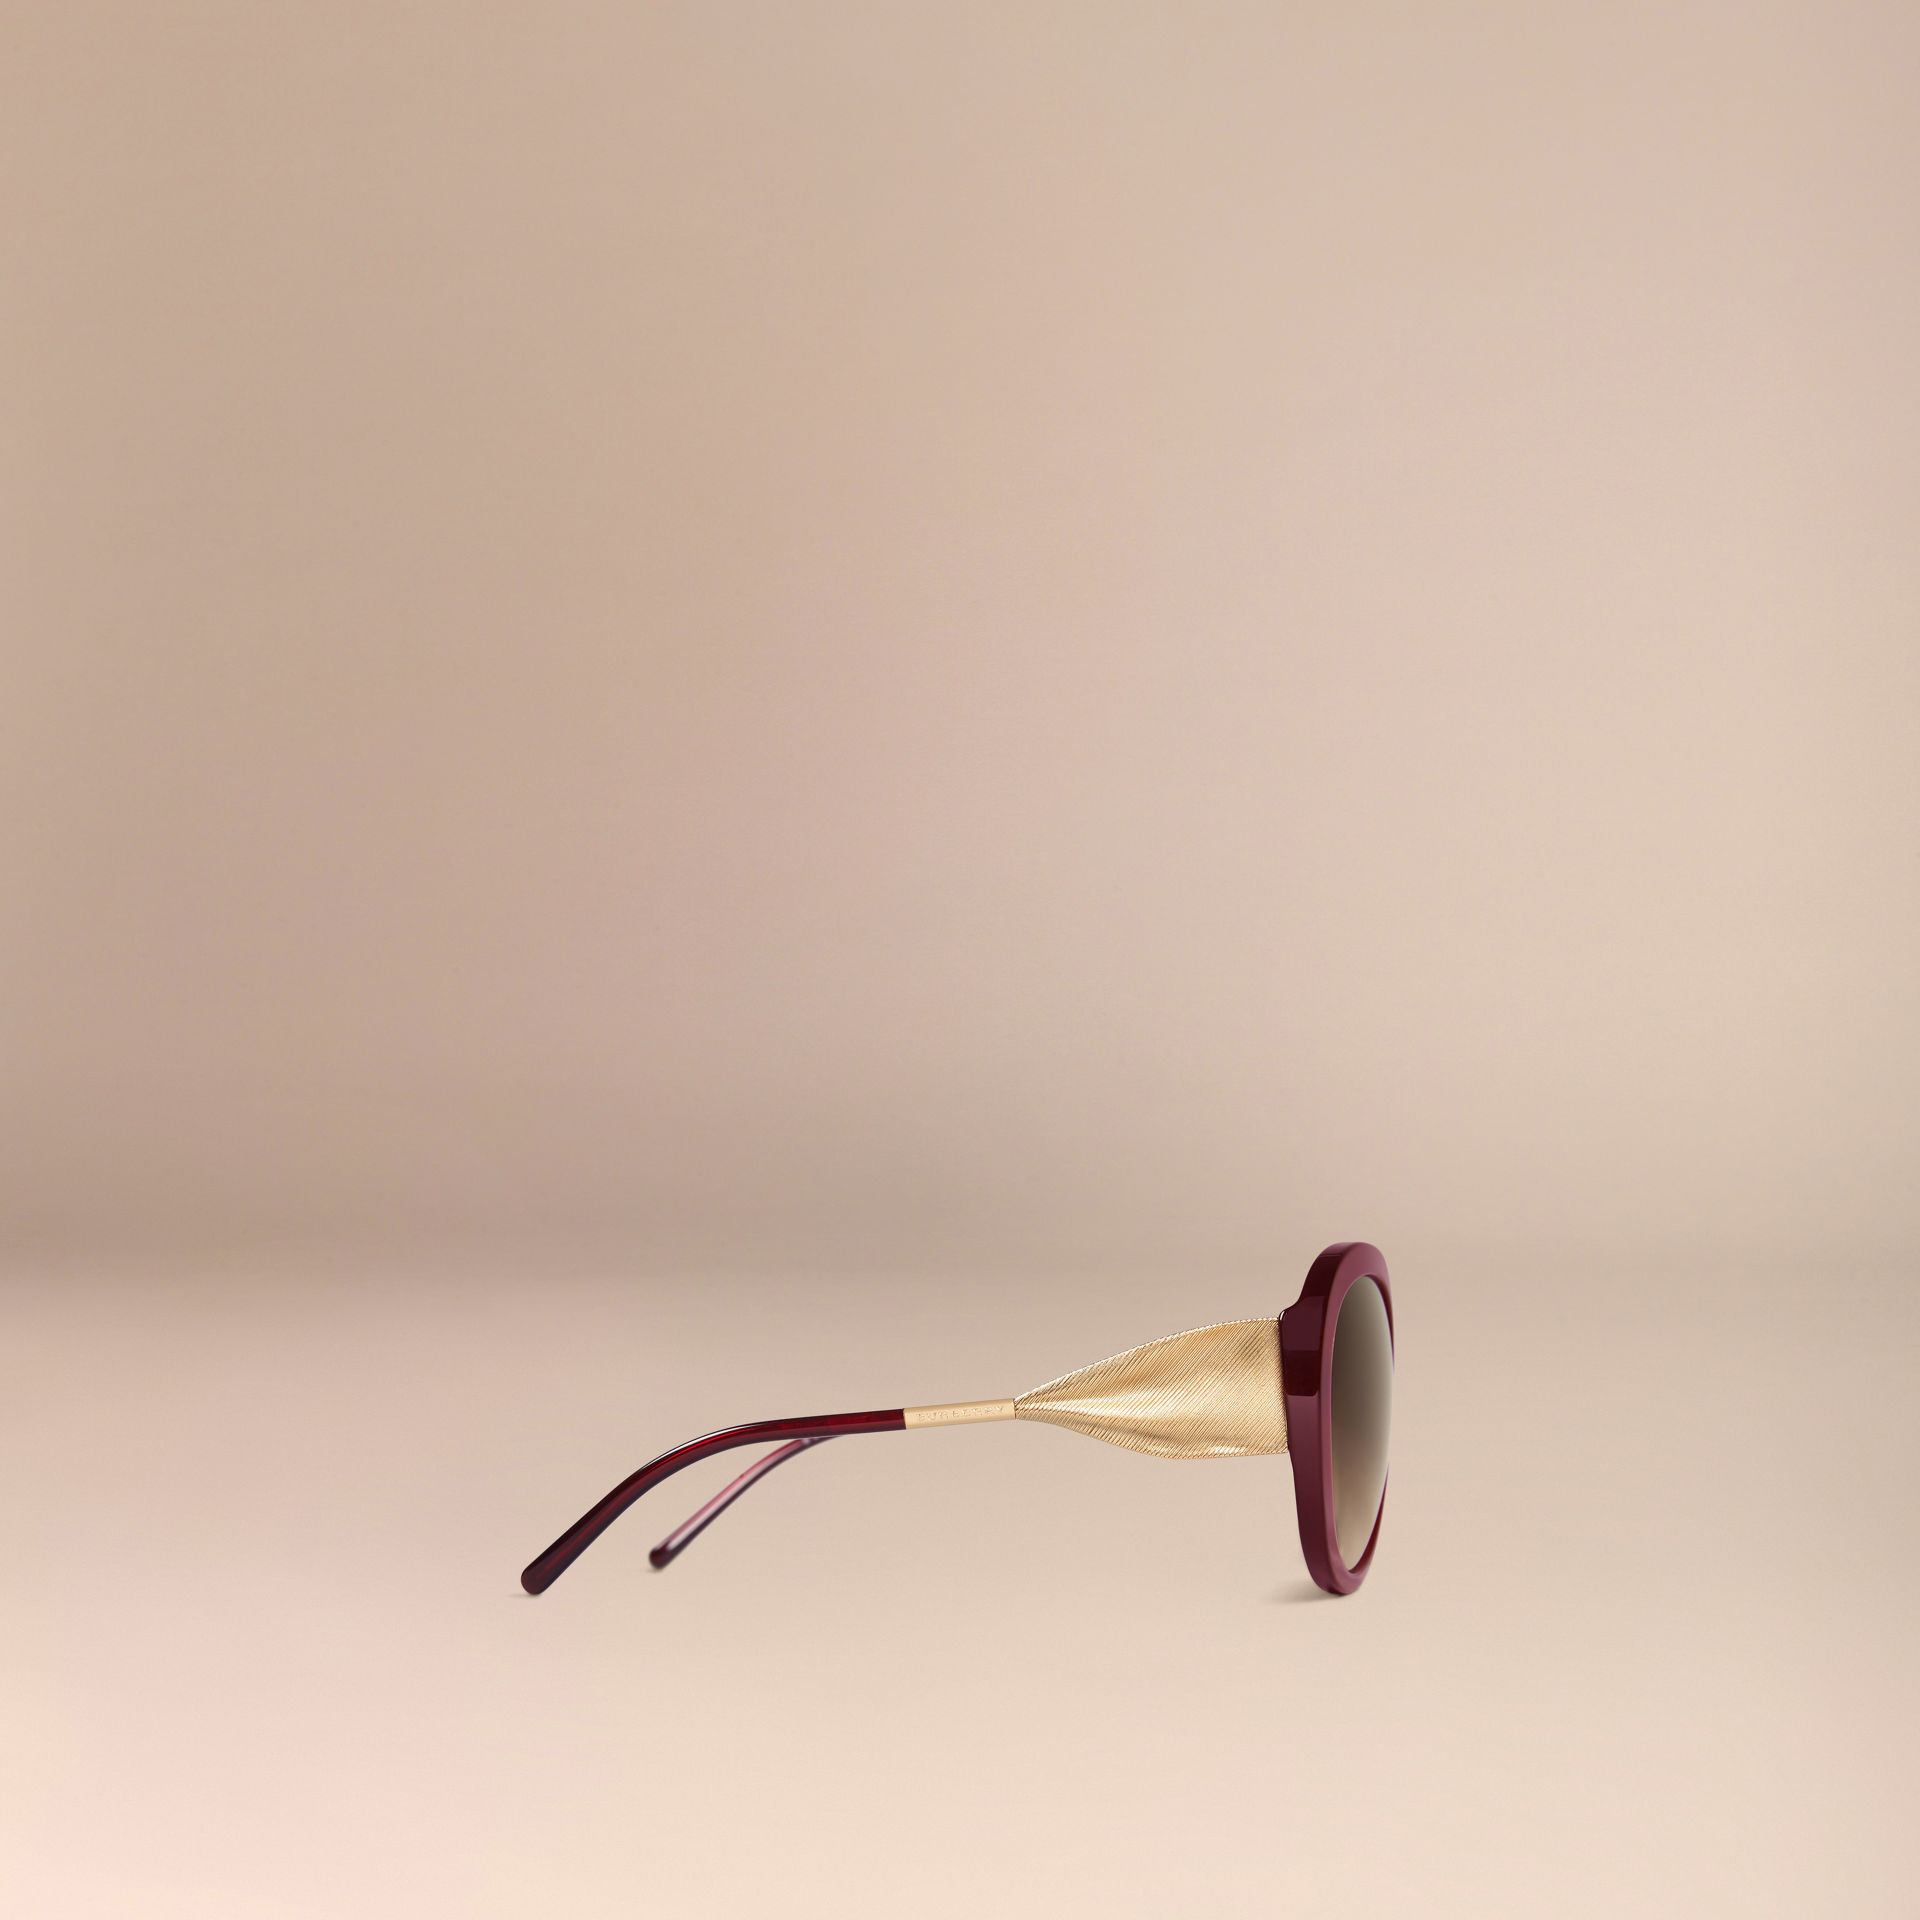 Oxblood Gabardine Collection Oversize Round Frame Sunglasses Oxblood - gallery image 5